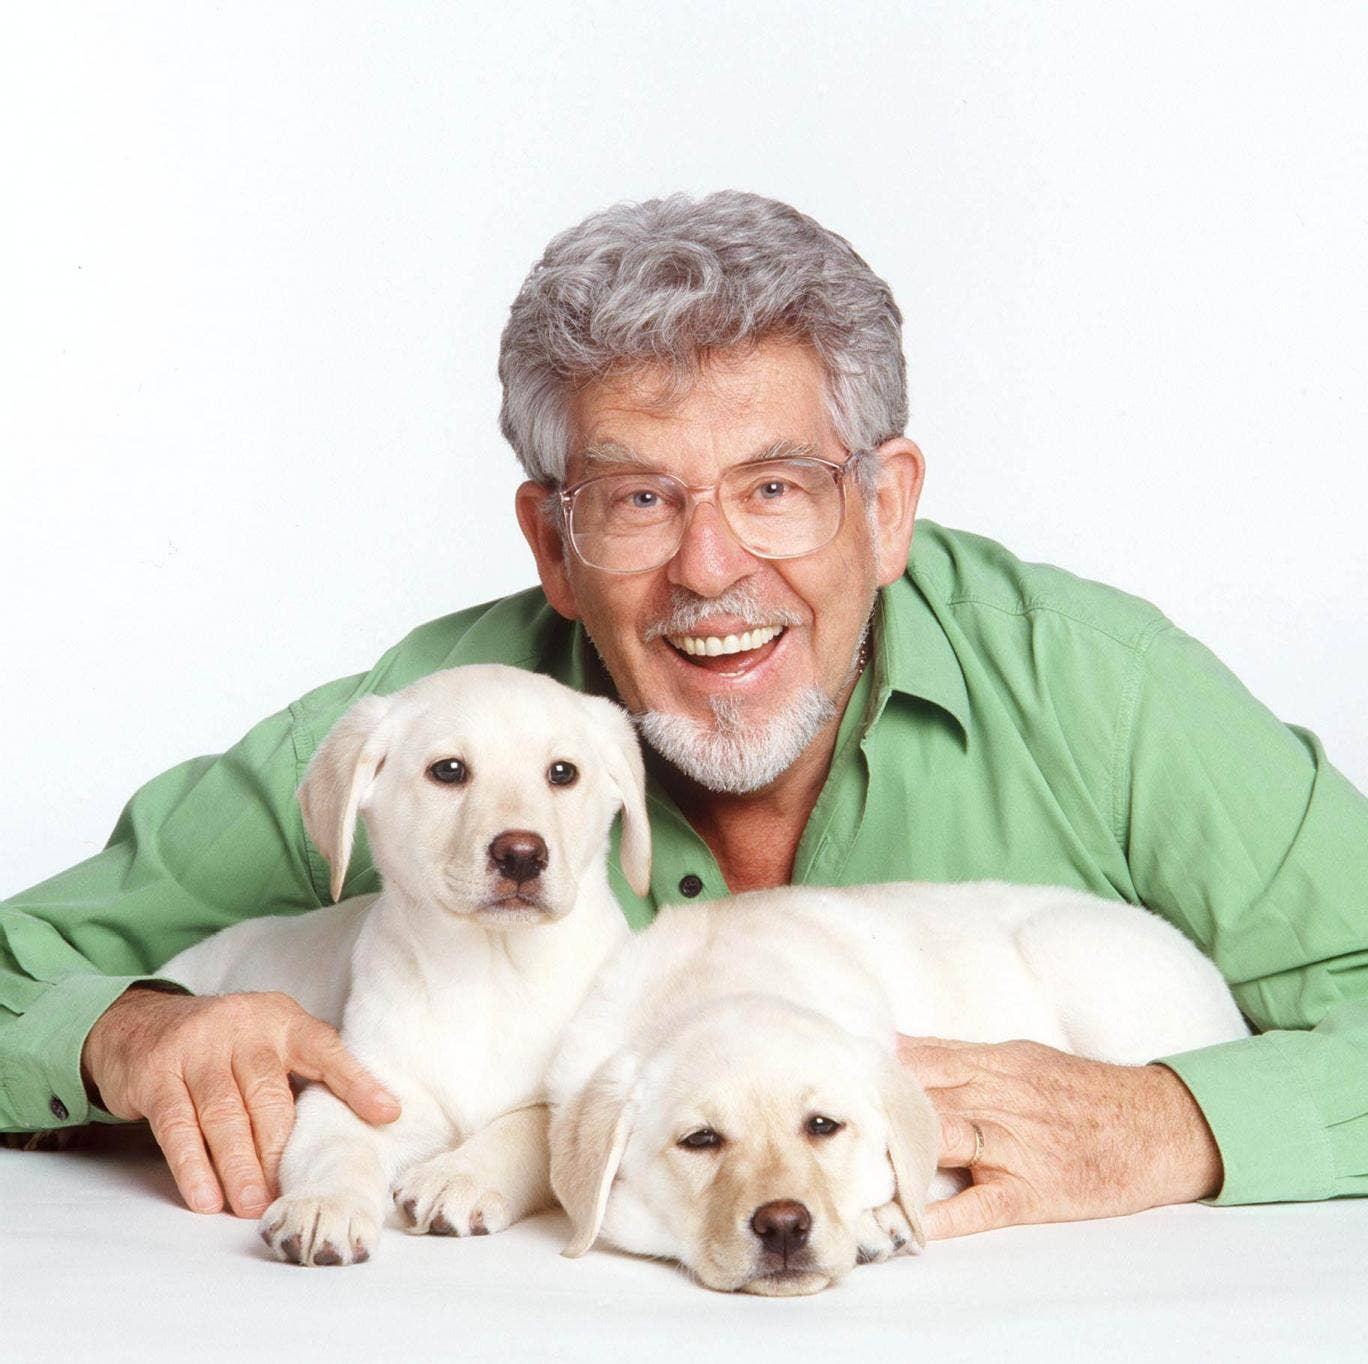 Rolf Harris presented long-running BBC series Animal Hospital between 1994 and 2004. He has been dropped from a similar Channel 5 programme after allegations of sex abuse.